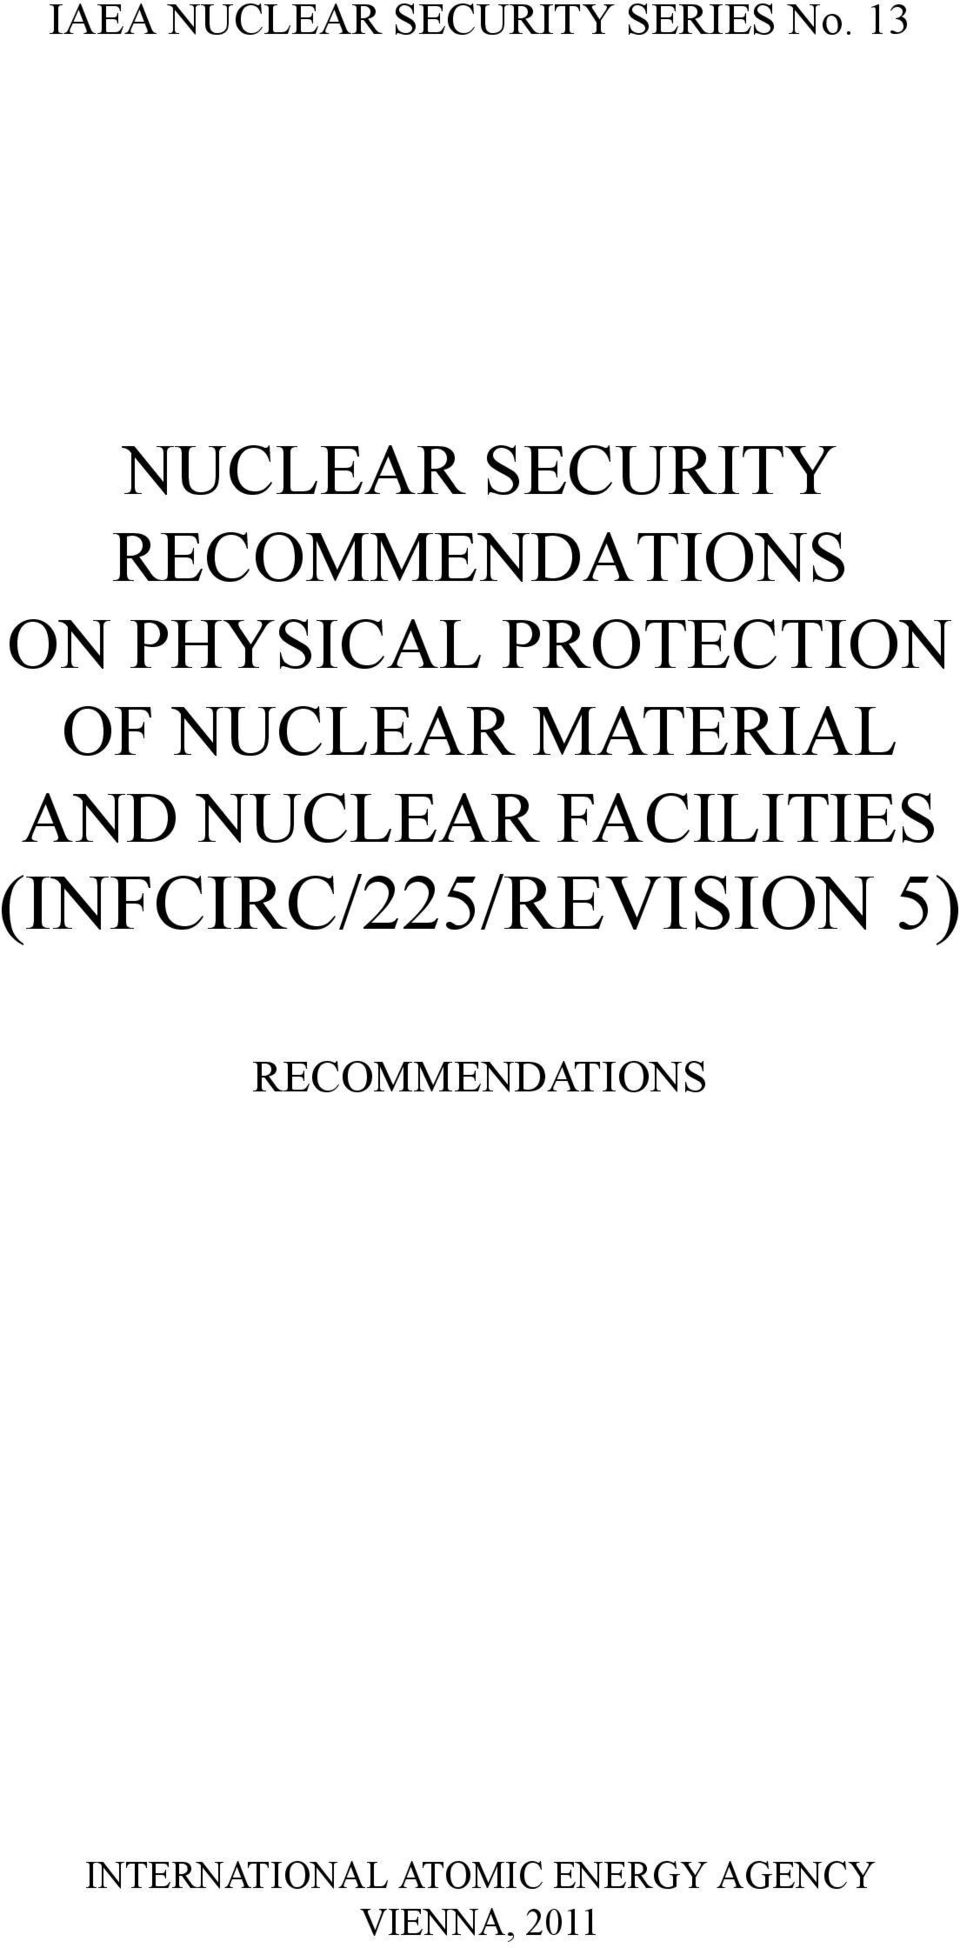 PROTECTION OF NUCLEAR MATERIAL AND NUCLEAR FACILITIES